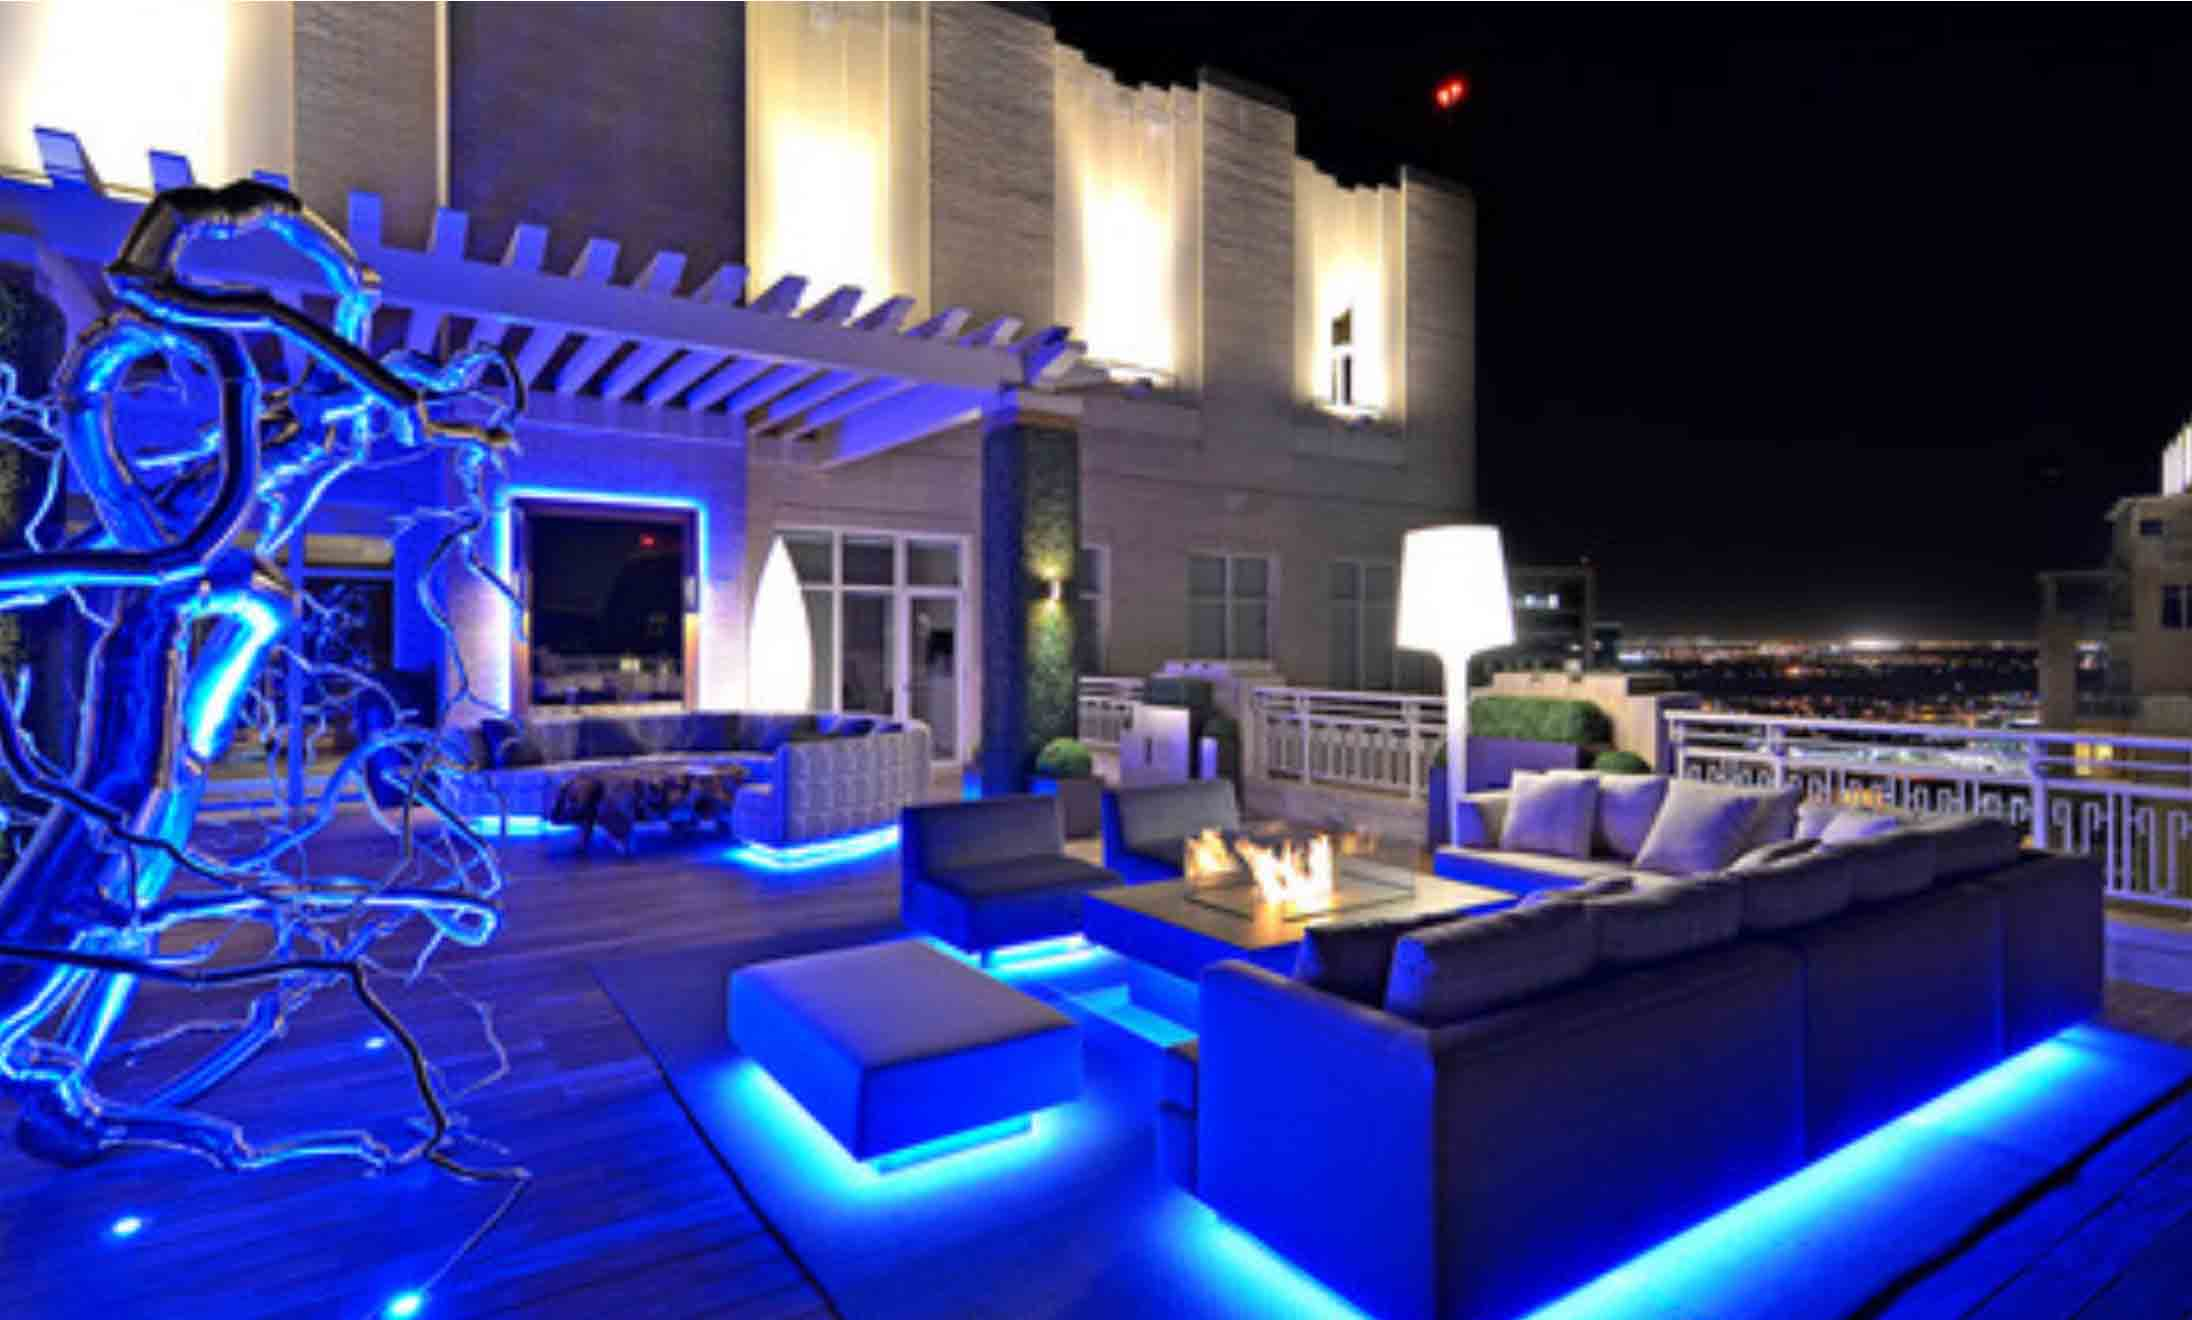 Led Lights For Outdoor Lighting Best Patio Garden And Landscape Lighting Ideas For 2014